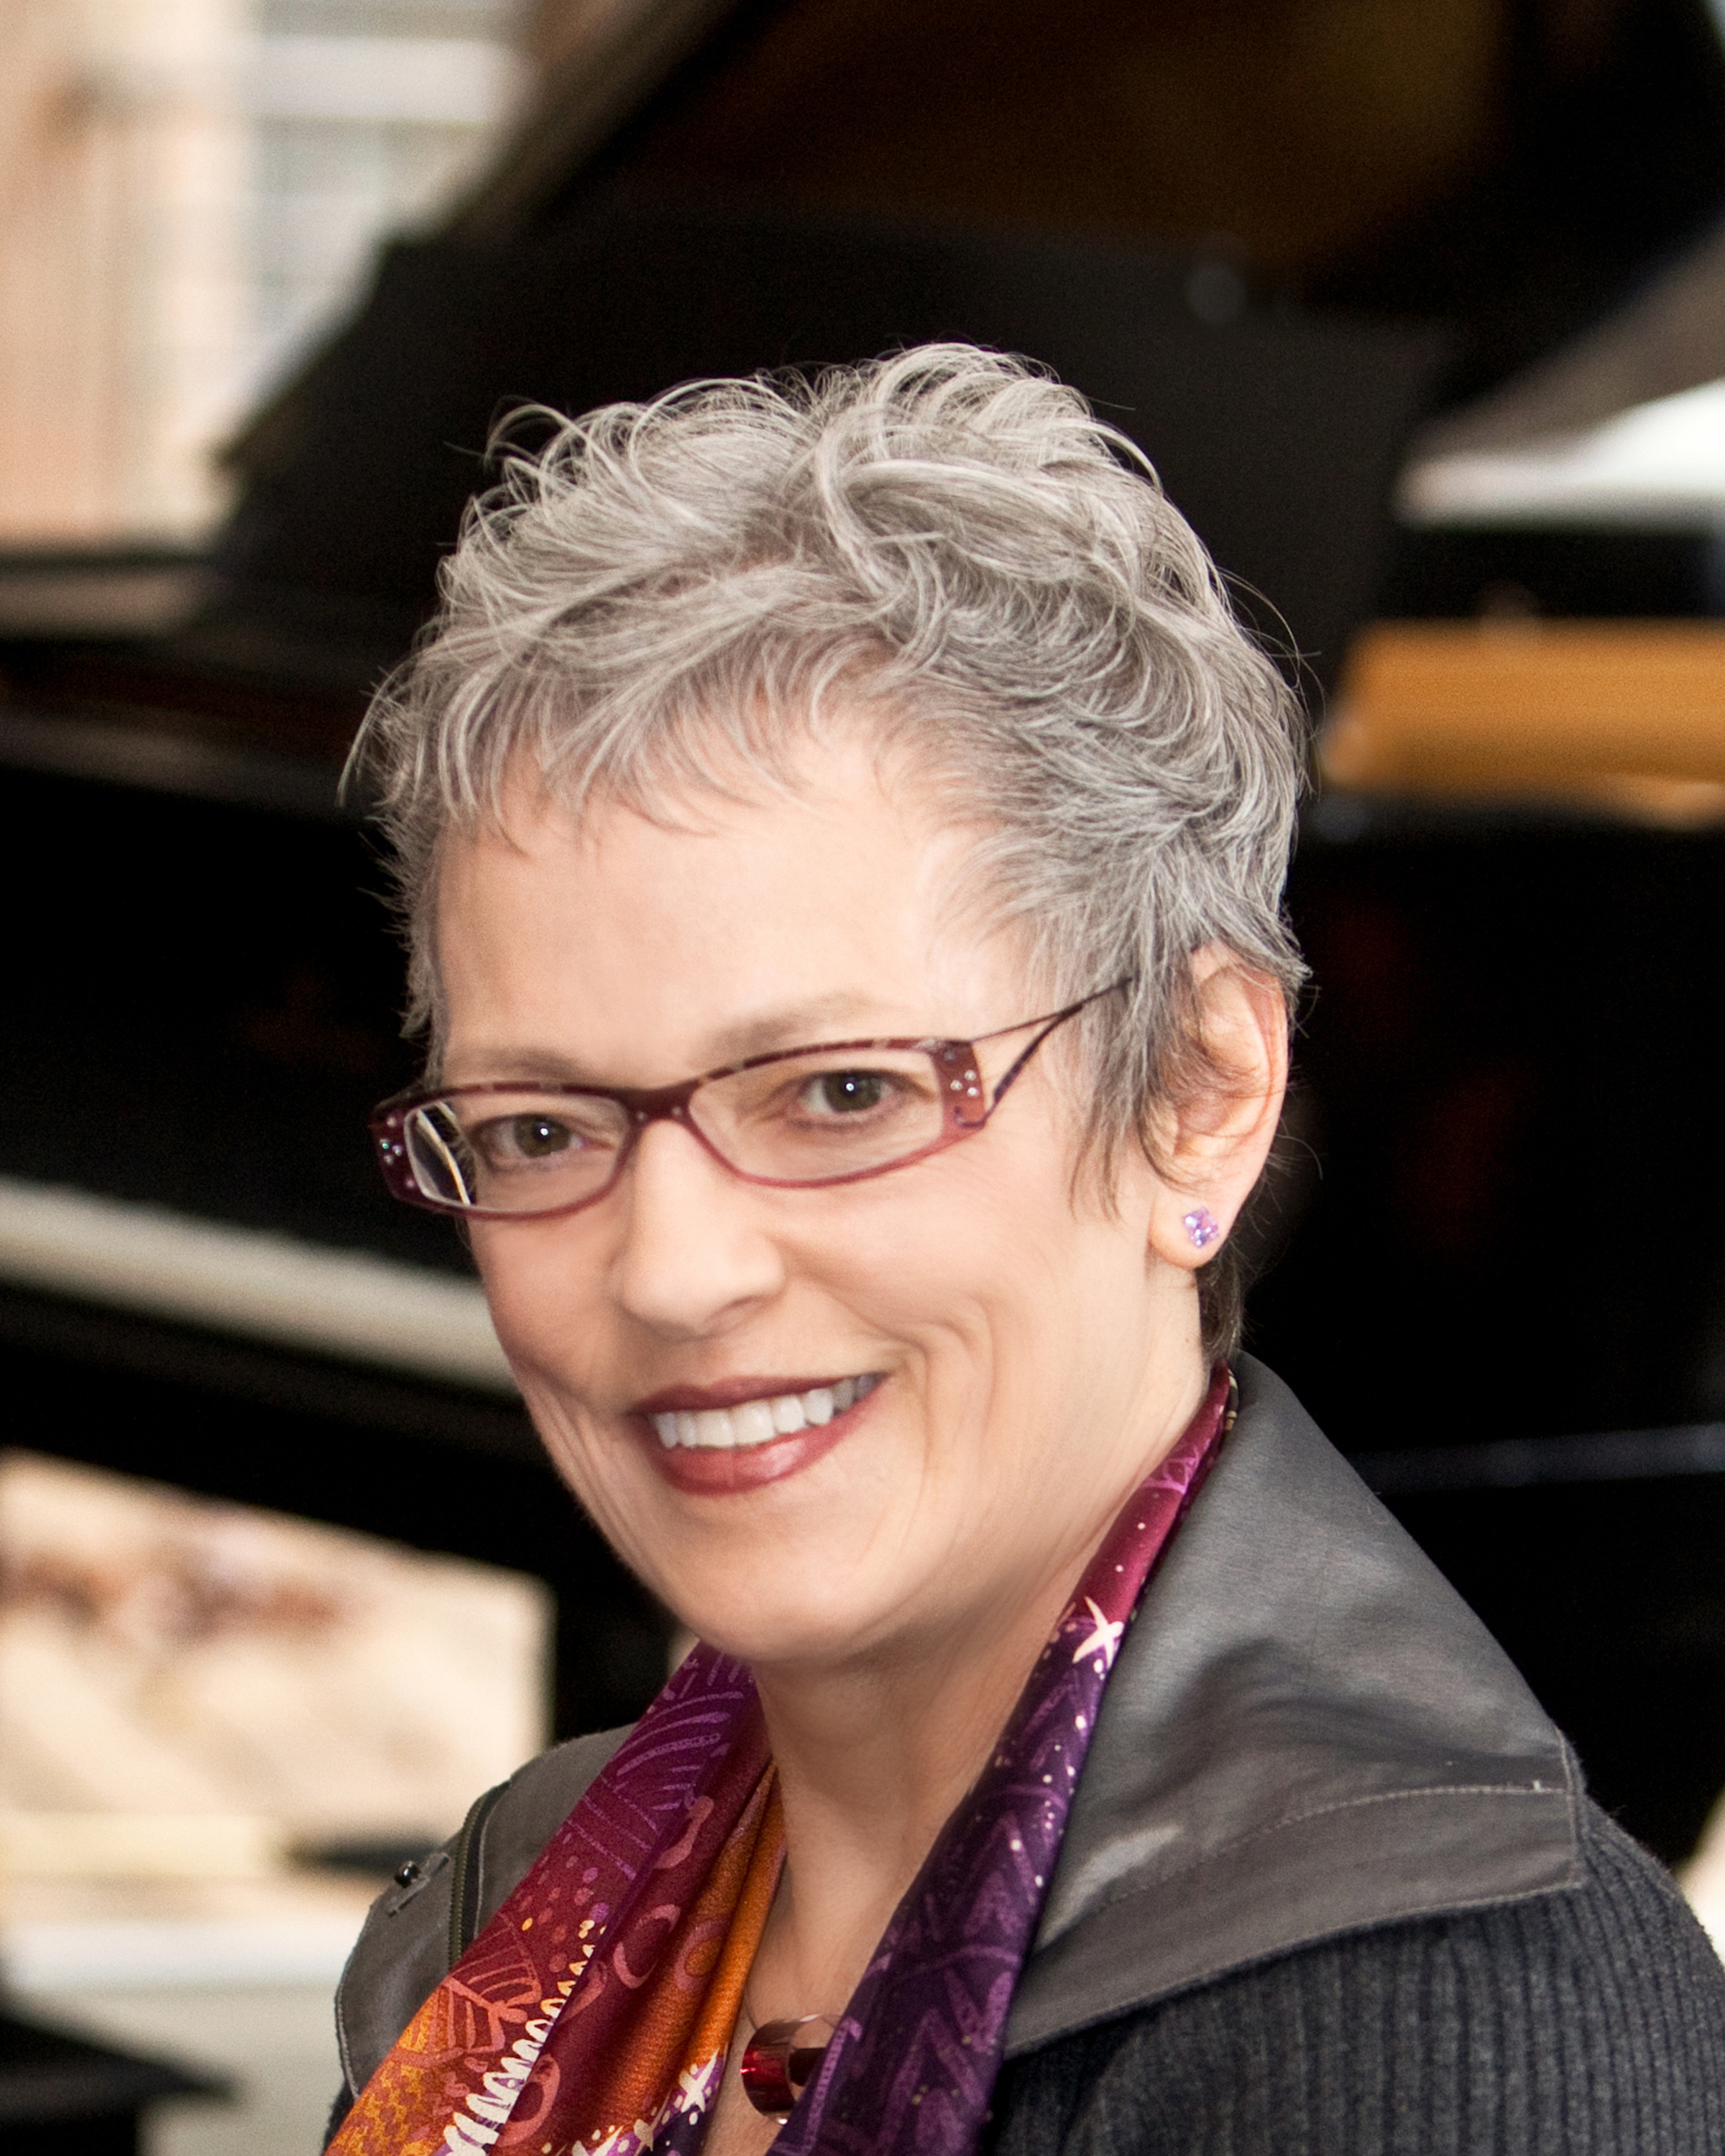 Cindy McTee - Adagio for string quartet - October 11 at projects+galleryRetired professor at University of North Texas, Guggenheim and Fulbright Fellow, now resides in St. Louis